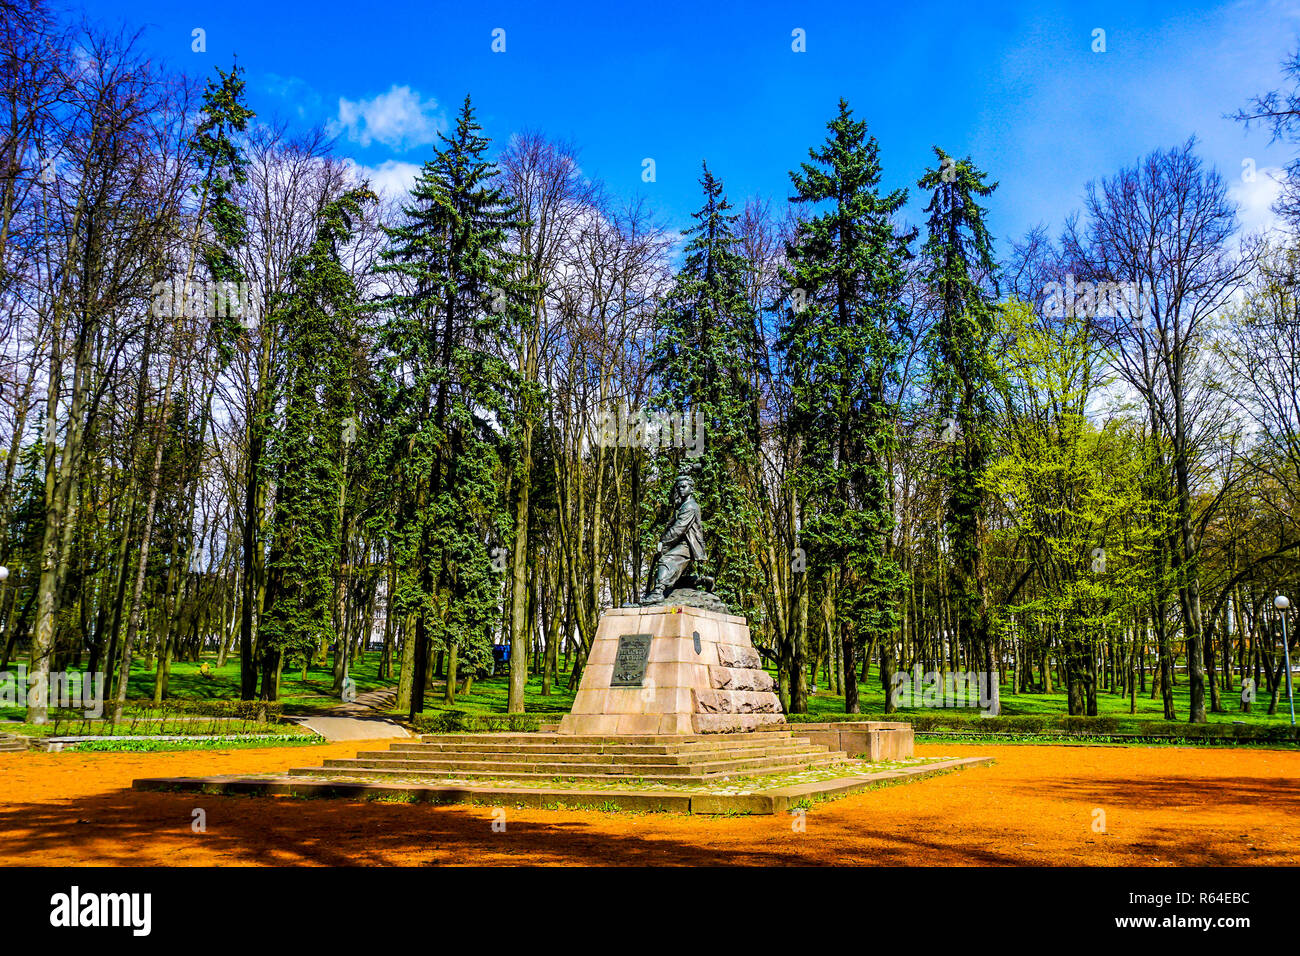 Minsk Marat Kazei Monument Side View in Park with Picturesque Blue Sky Background - Stock Image